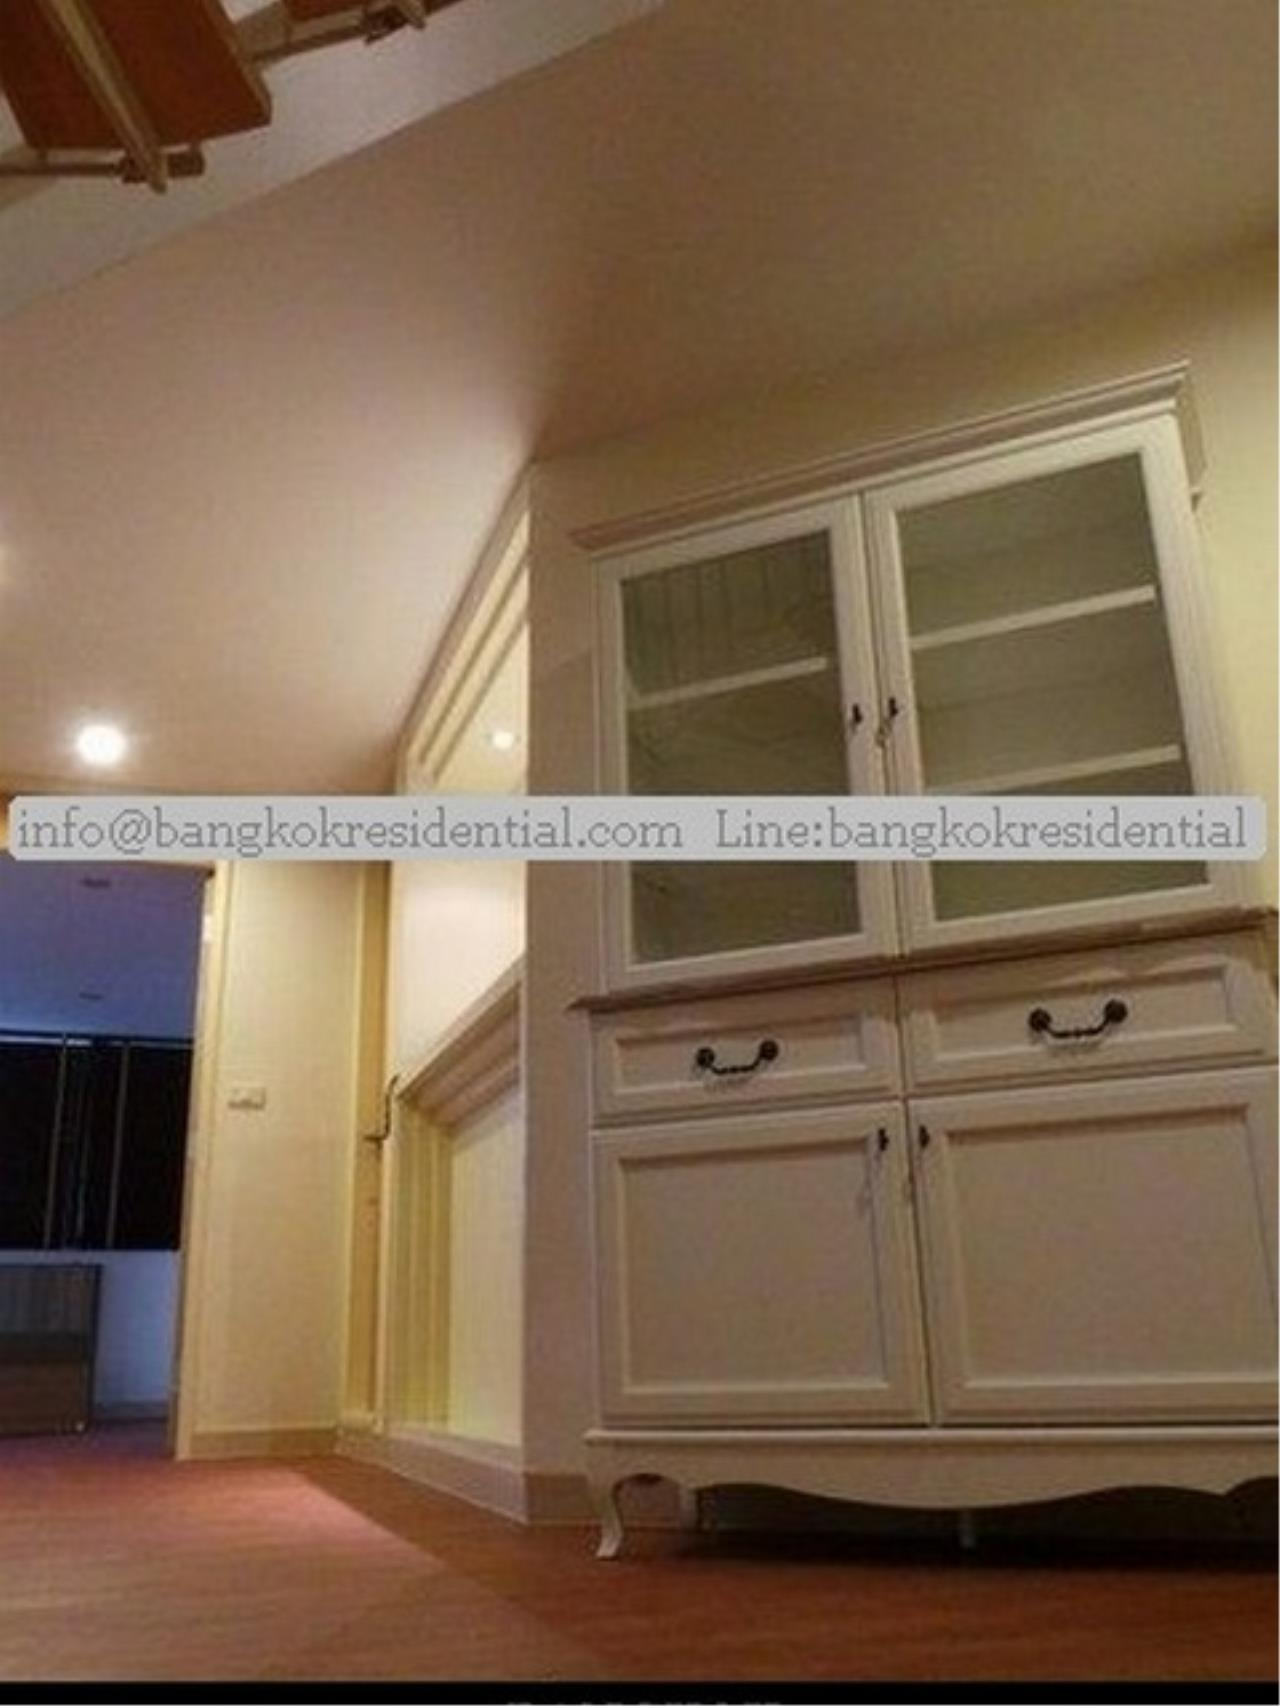 Bangkok Residential Agency's 4BR Tai Ping Tower For Sale Or Rent (BR2994CD) 8